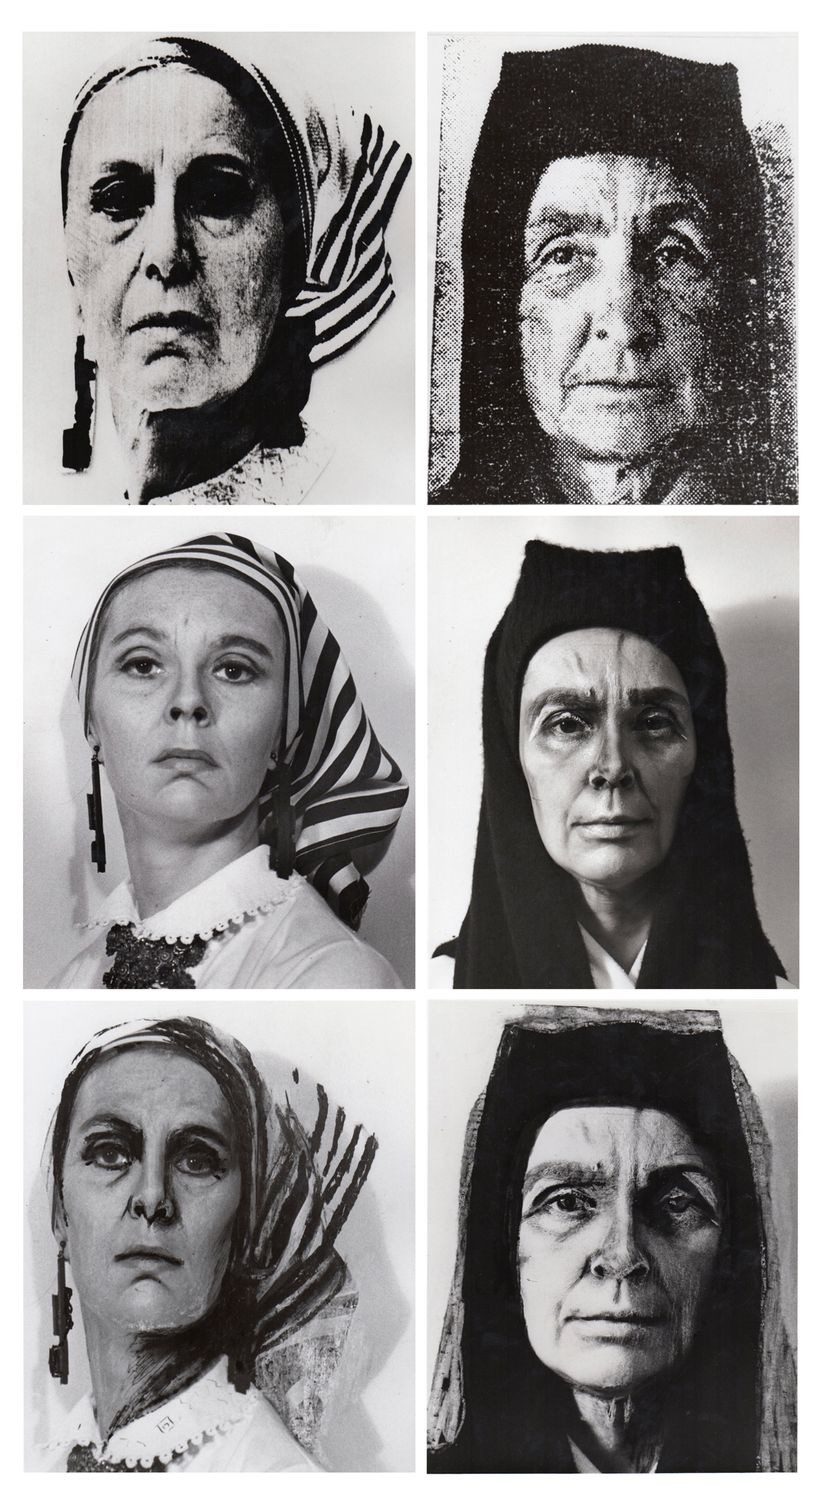 "<em>O'Kevelson</em>, 1973 30x16 inches, 6 photographs 8x10"" each Handwork with china marker on photographs"